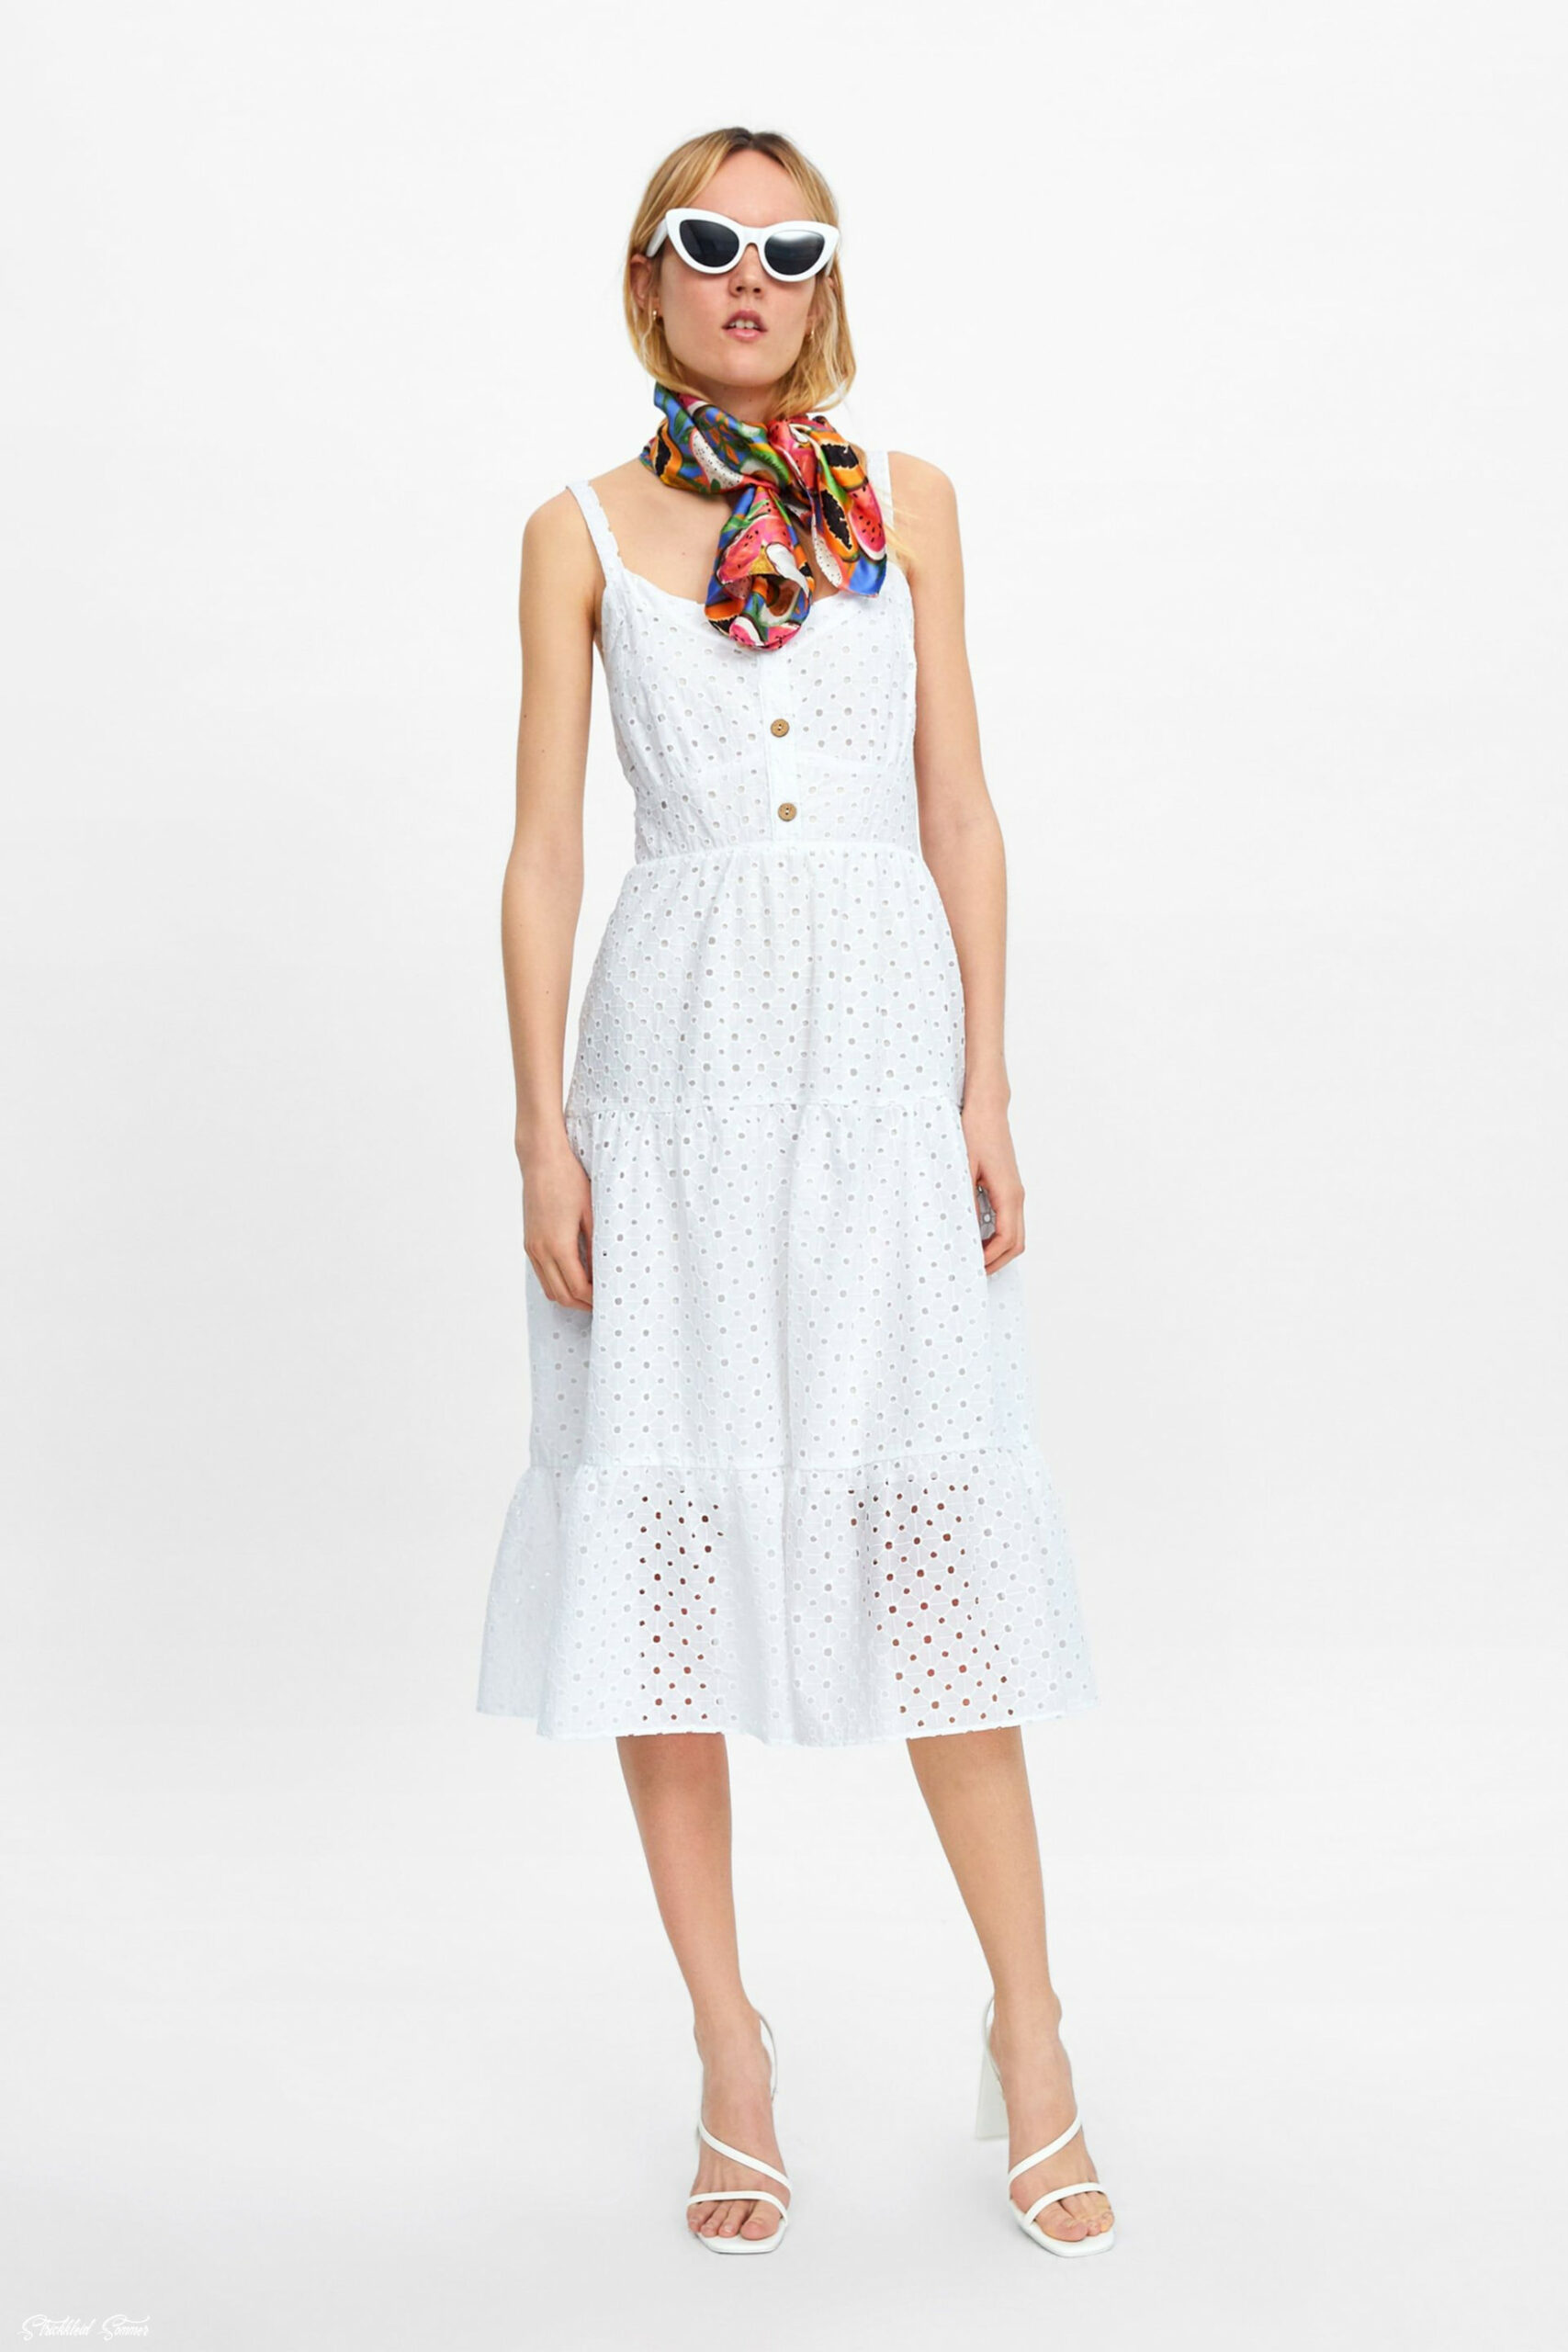 dress with cutwork embroidery floral dress casual, embroidered